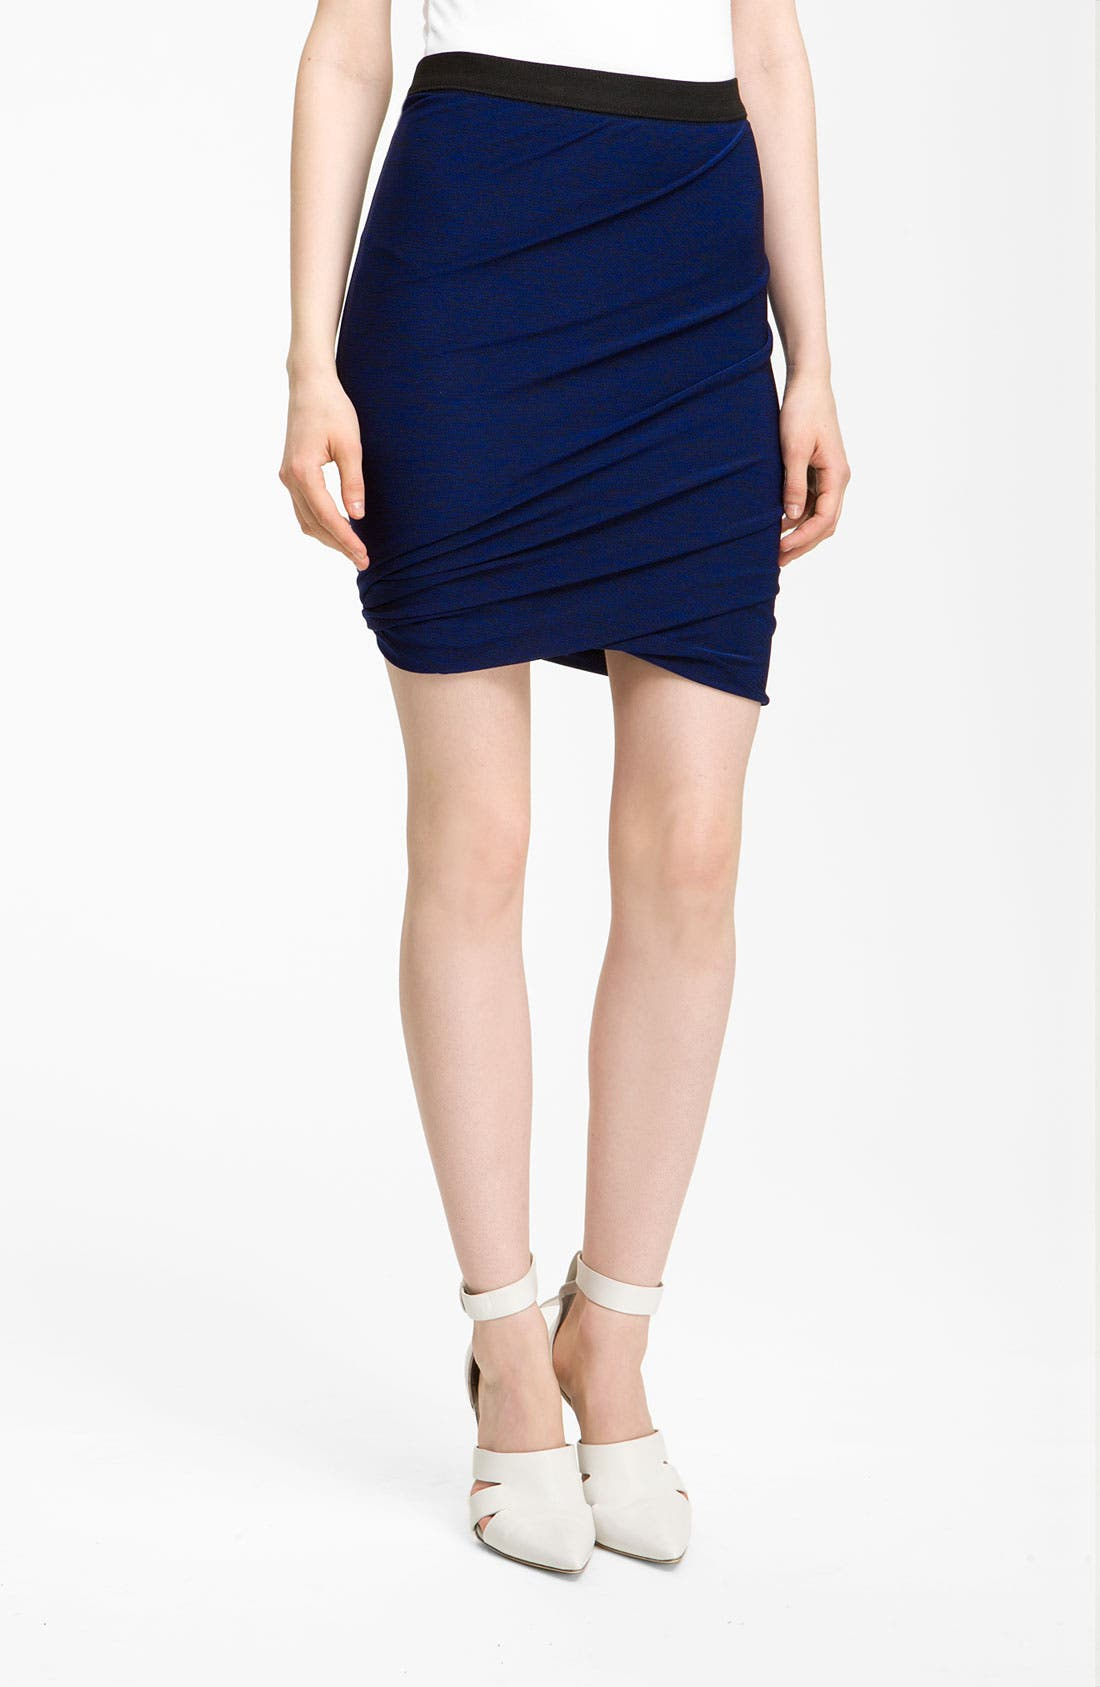 Alternate Image 1 Selected - T by Alexander Wang Marled Jersey Twist Skirt